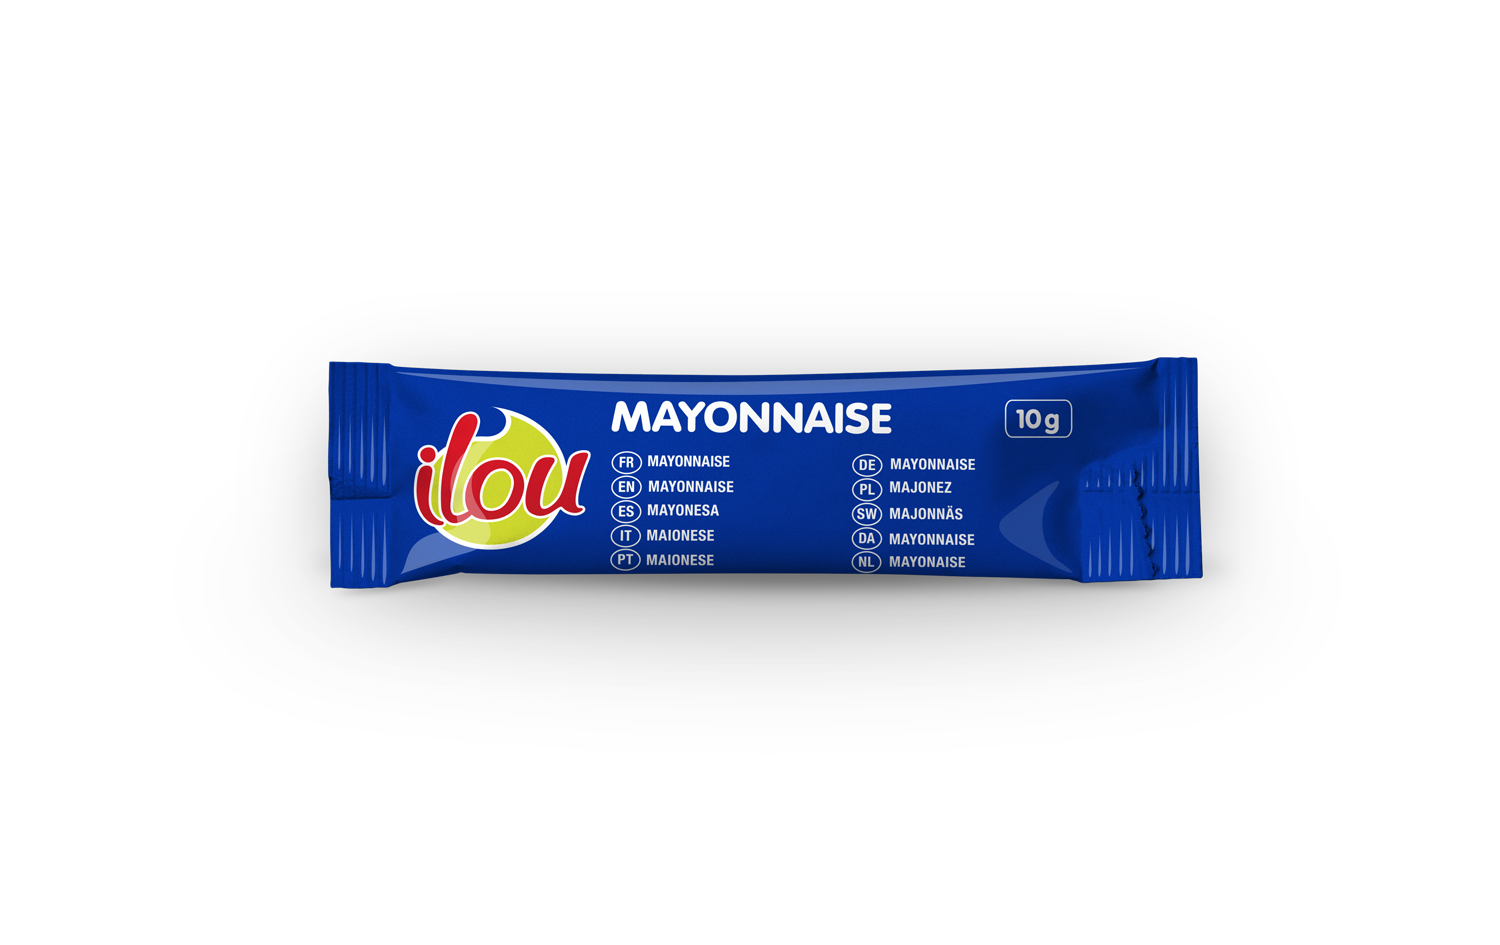 Sauce_Stick-10g-Mayonnaise